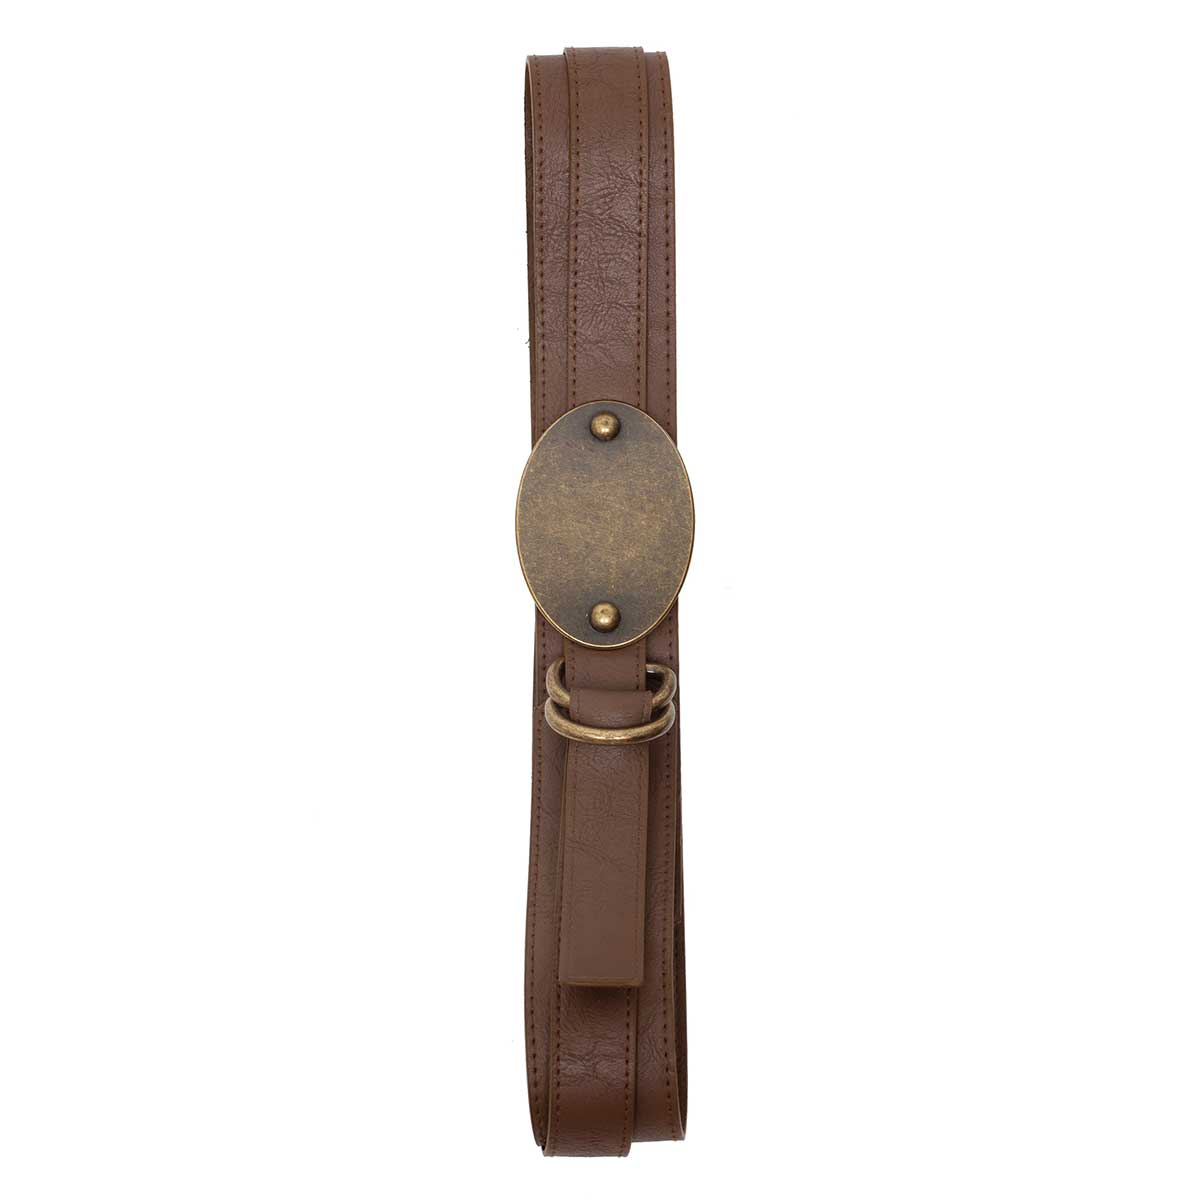 BROWN BELT WITH ANTIQUE BRONZE OVAL BUCKLE